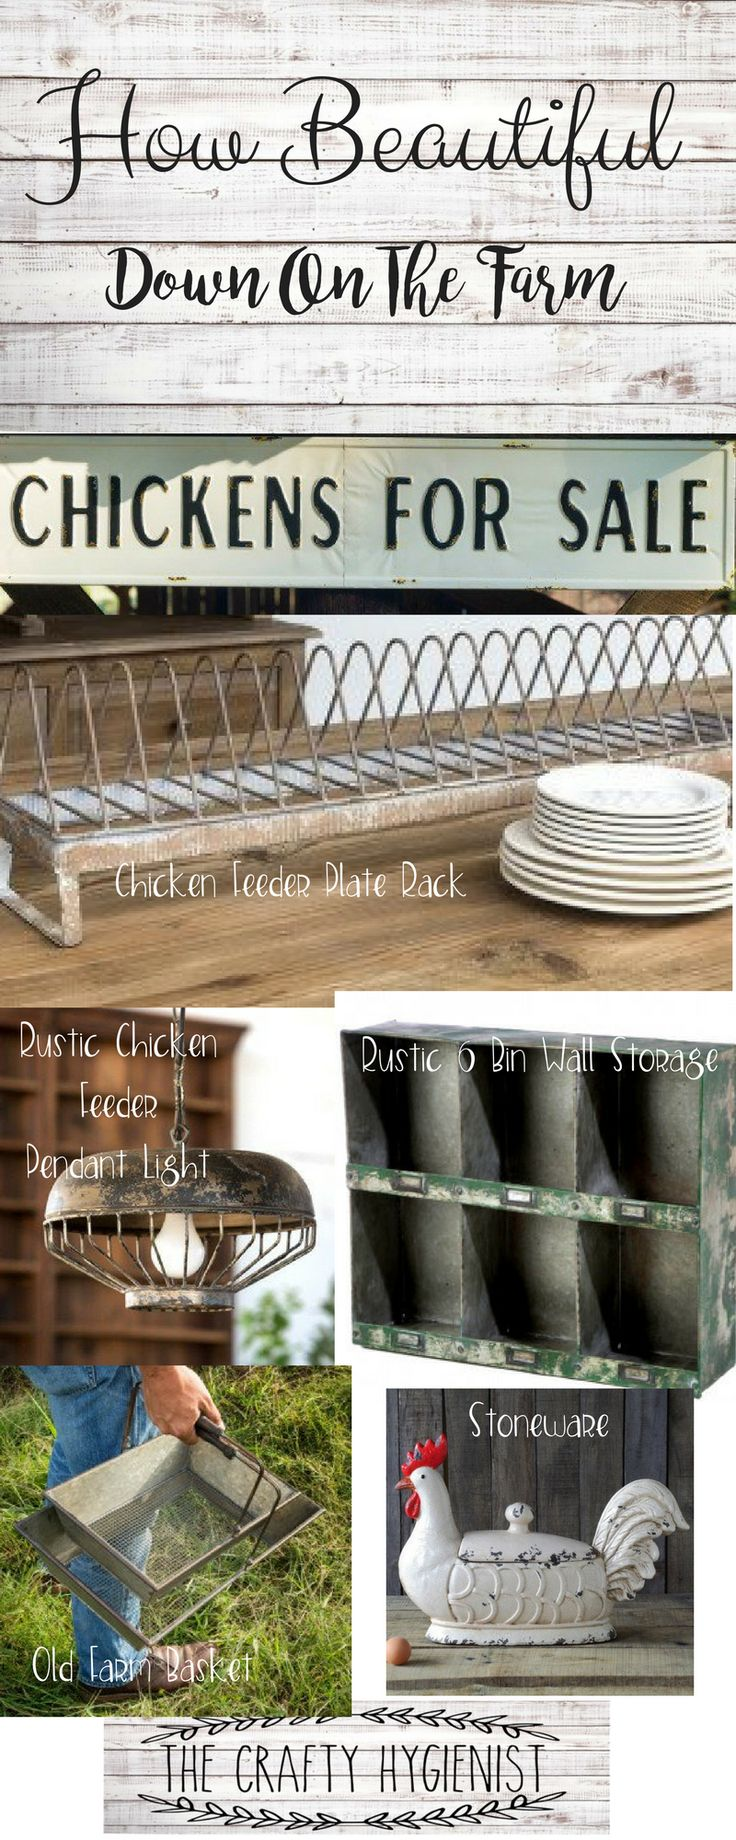 This post contains affiliate links and if you click the link and make a purchase I will receive a commission.  Hen House collection, chickens for sale sign, chicken feeder plate holder, chicken laying storage bin, basketschicken farmhouse decor | chicken farmhouse | chicken farmhouse kitchen | chicken farmhouse sign | chicken farmhouse ideas |